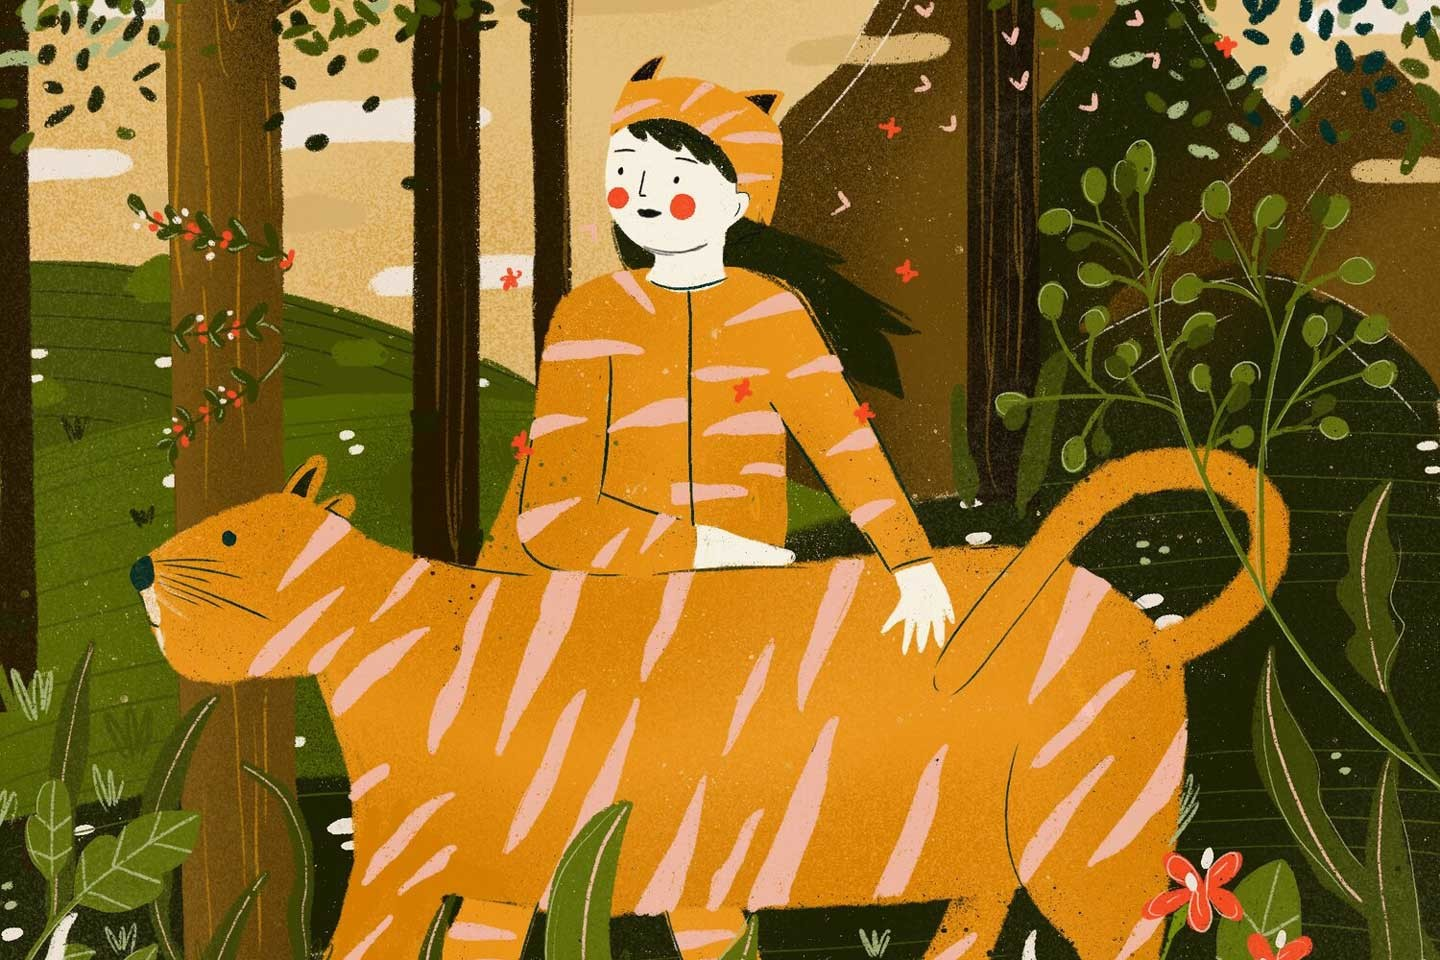 In the forest - pet tigers